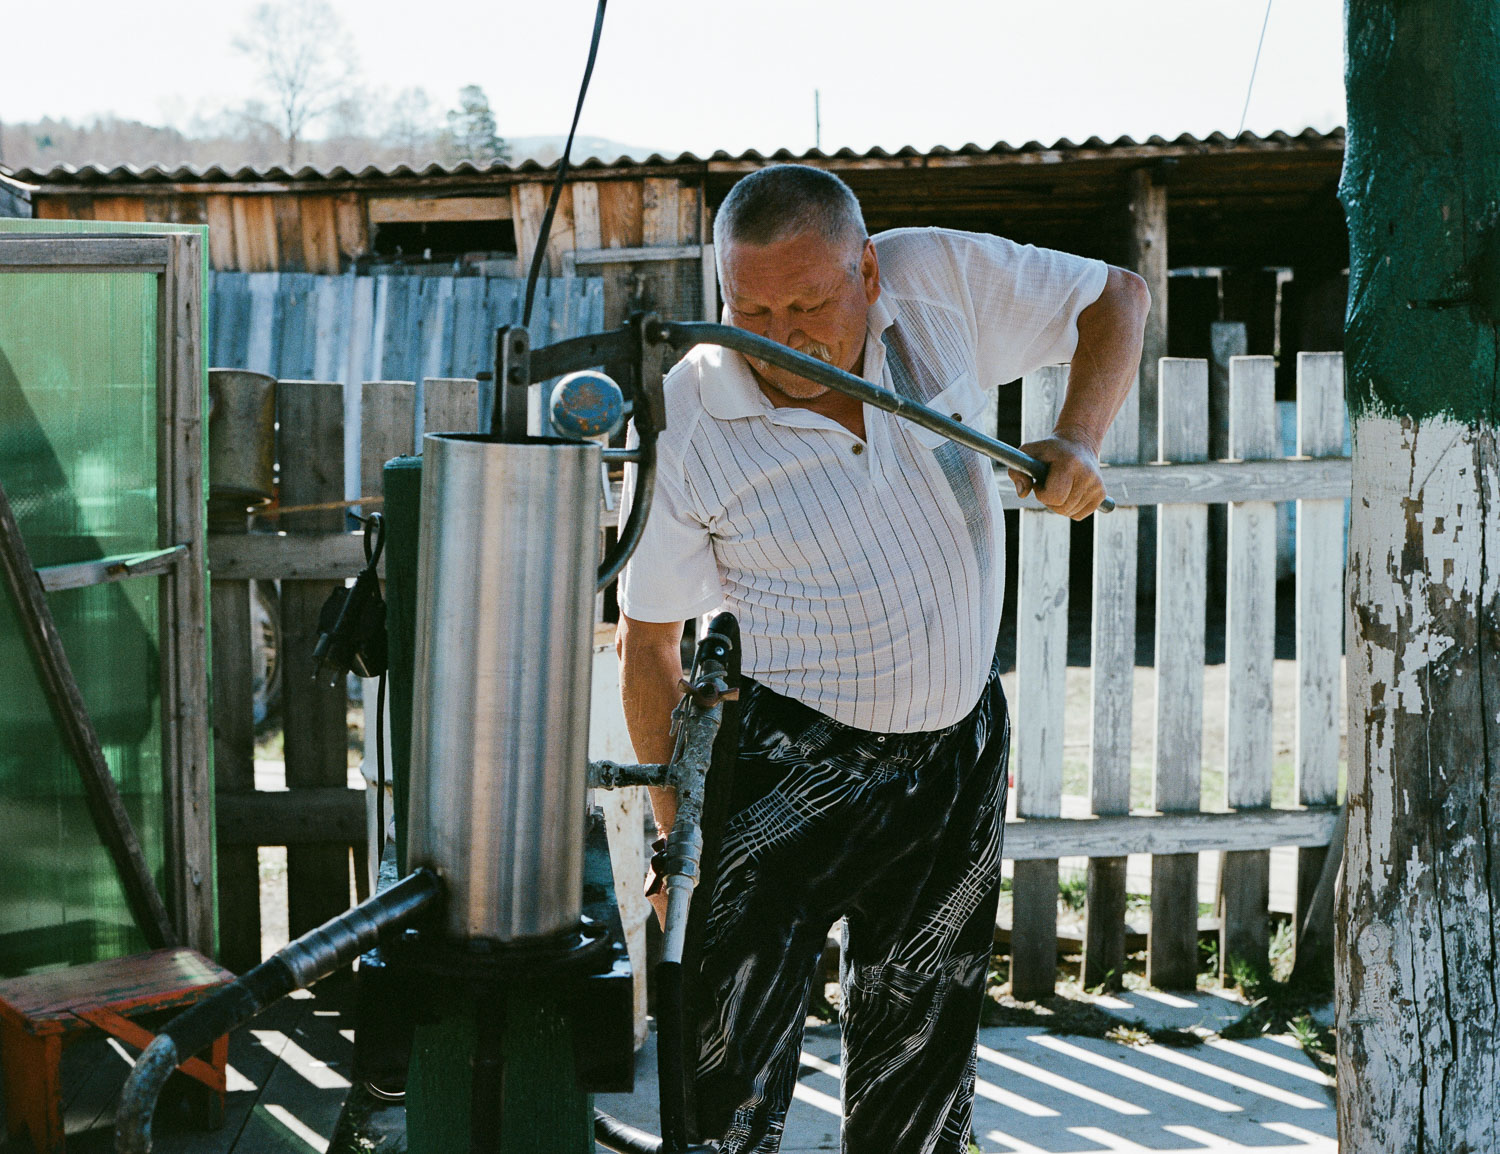 Getting fresh water from the well. Photo: Contax 645 + Kodak